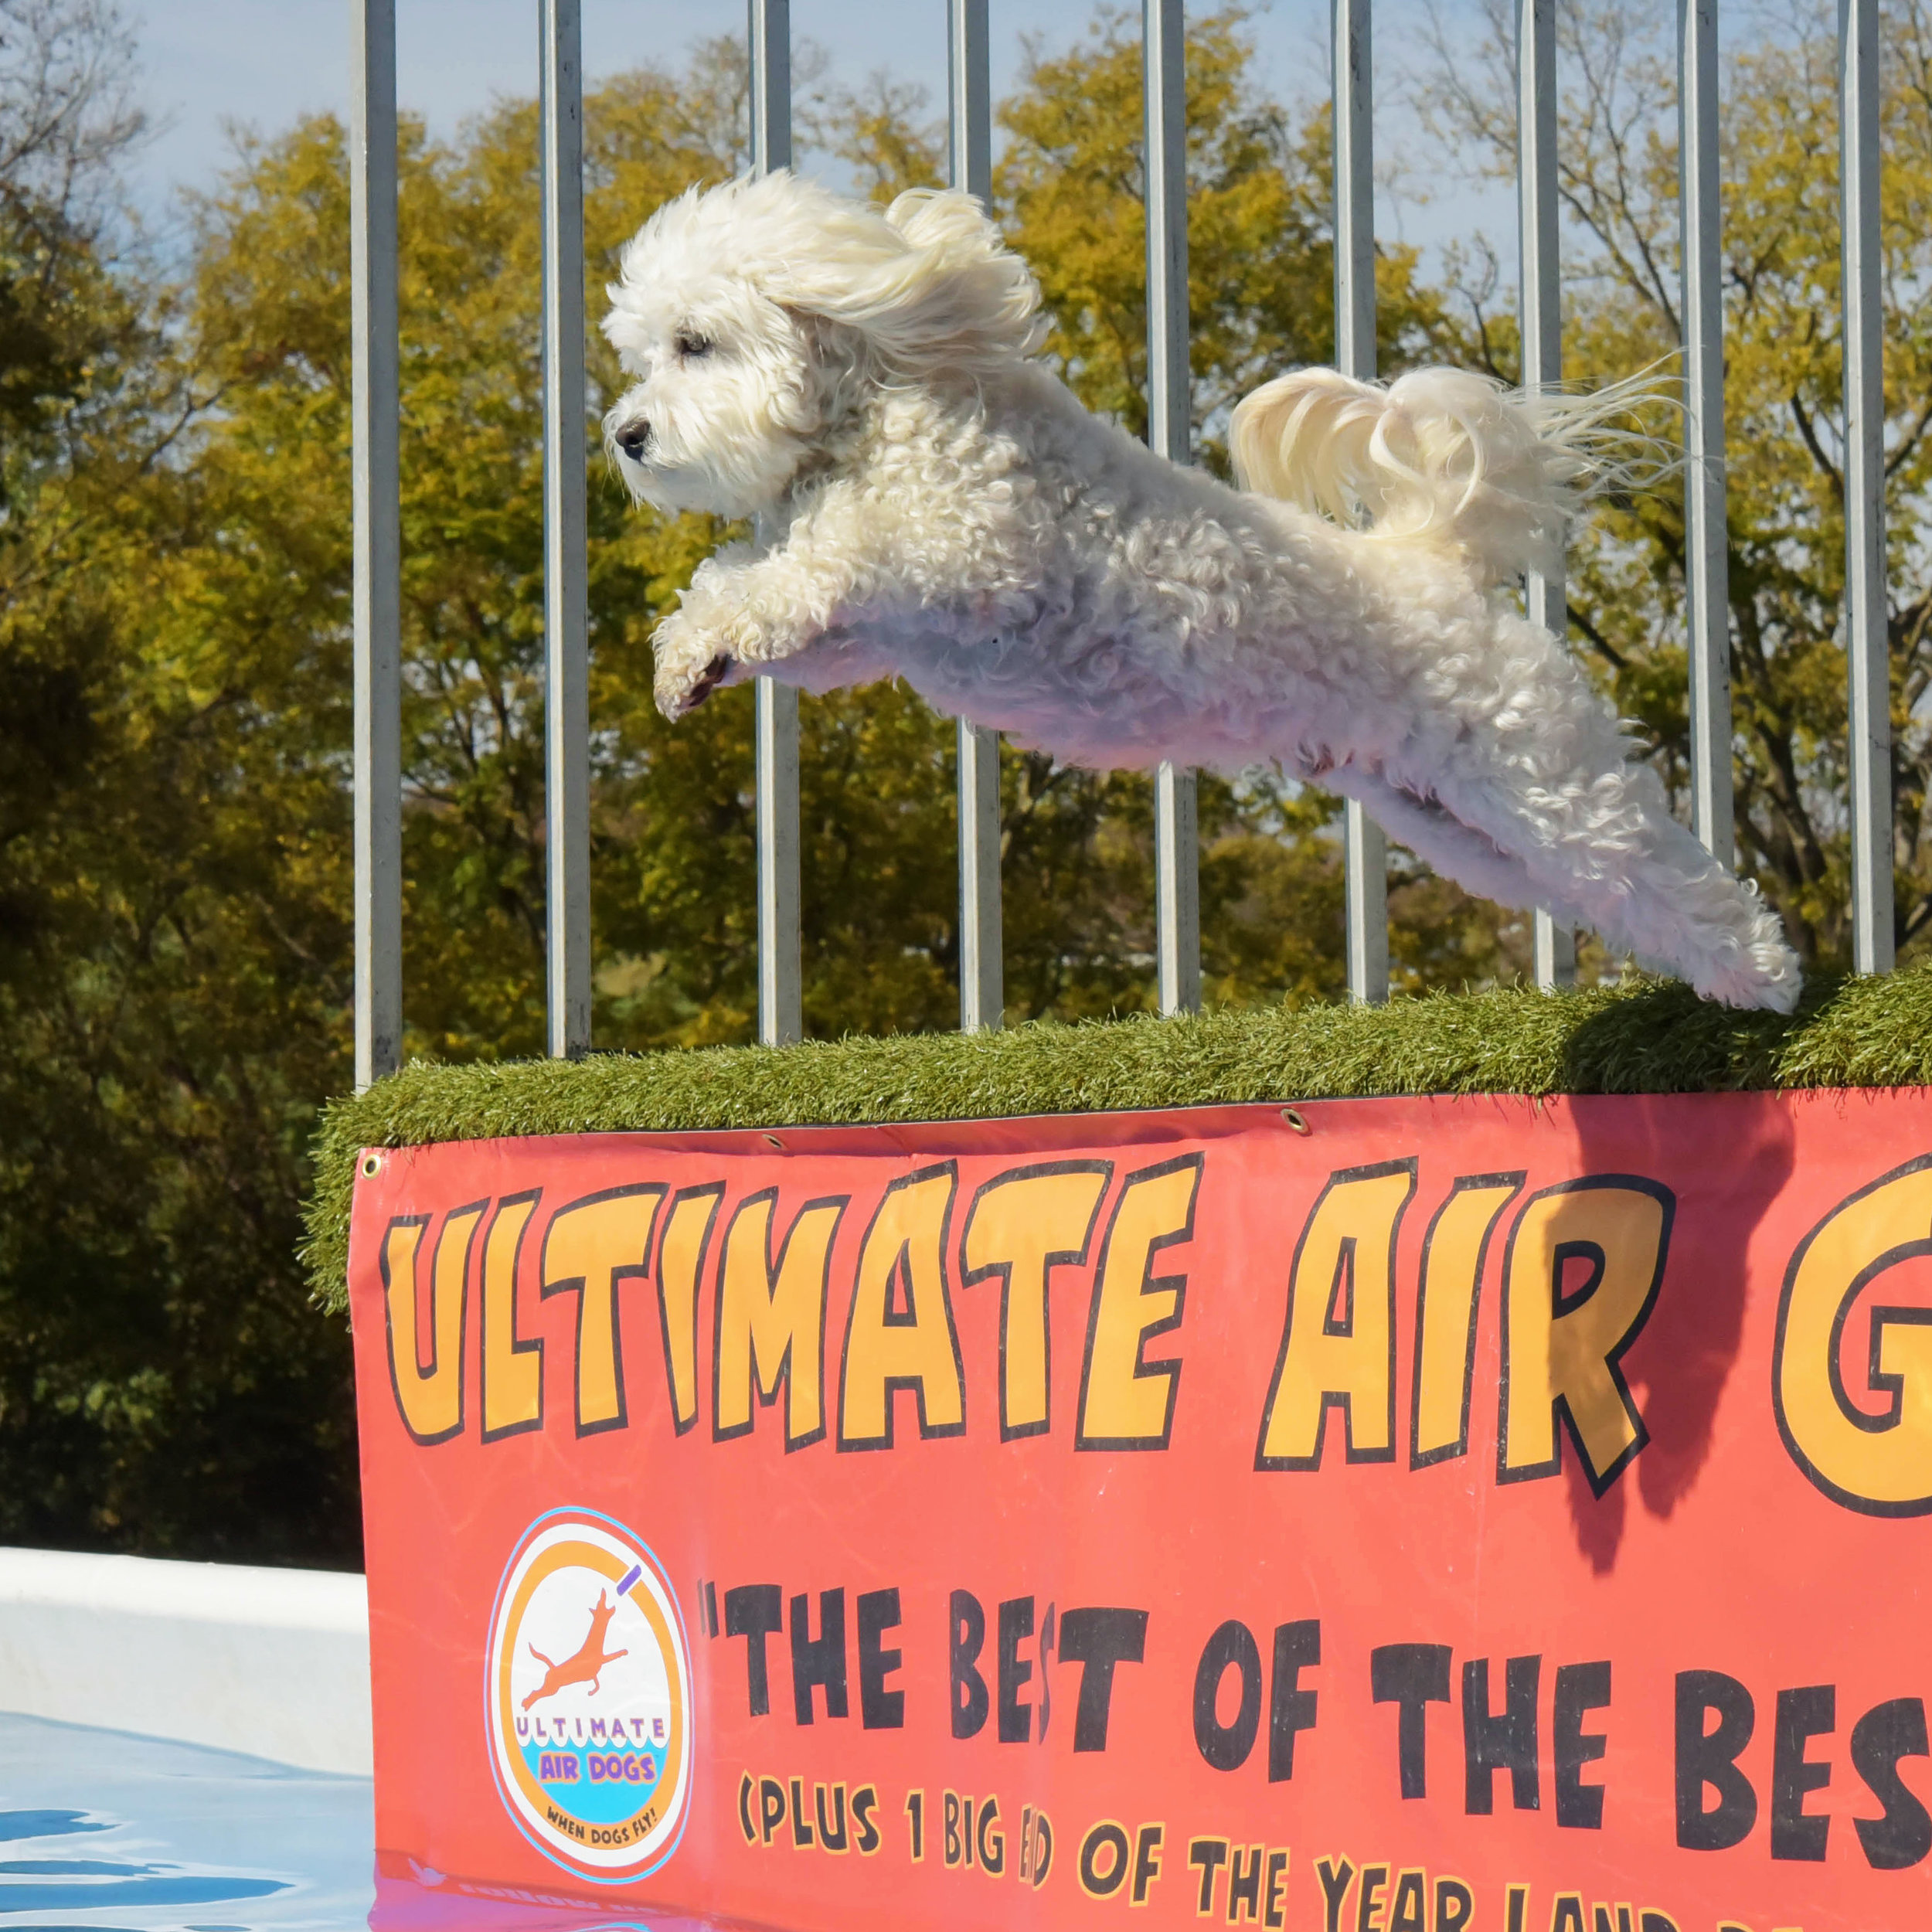 Today was the Featherweight Finals, and Bruiser jumped his longest jump of the weekend! 5 Feet! He didn't even need the ball, he was just ready to jump! (I apologize in advance for the motion sickness video…I get too excited and the camera goes all over the place!)